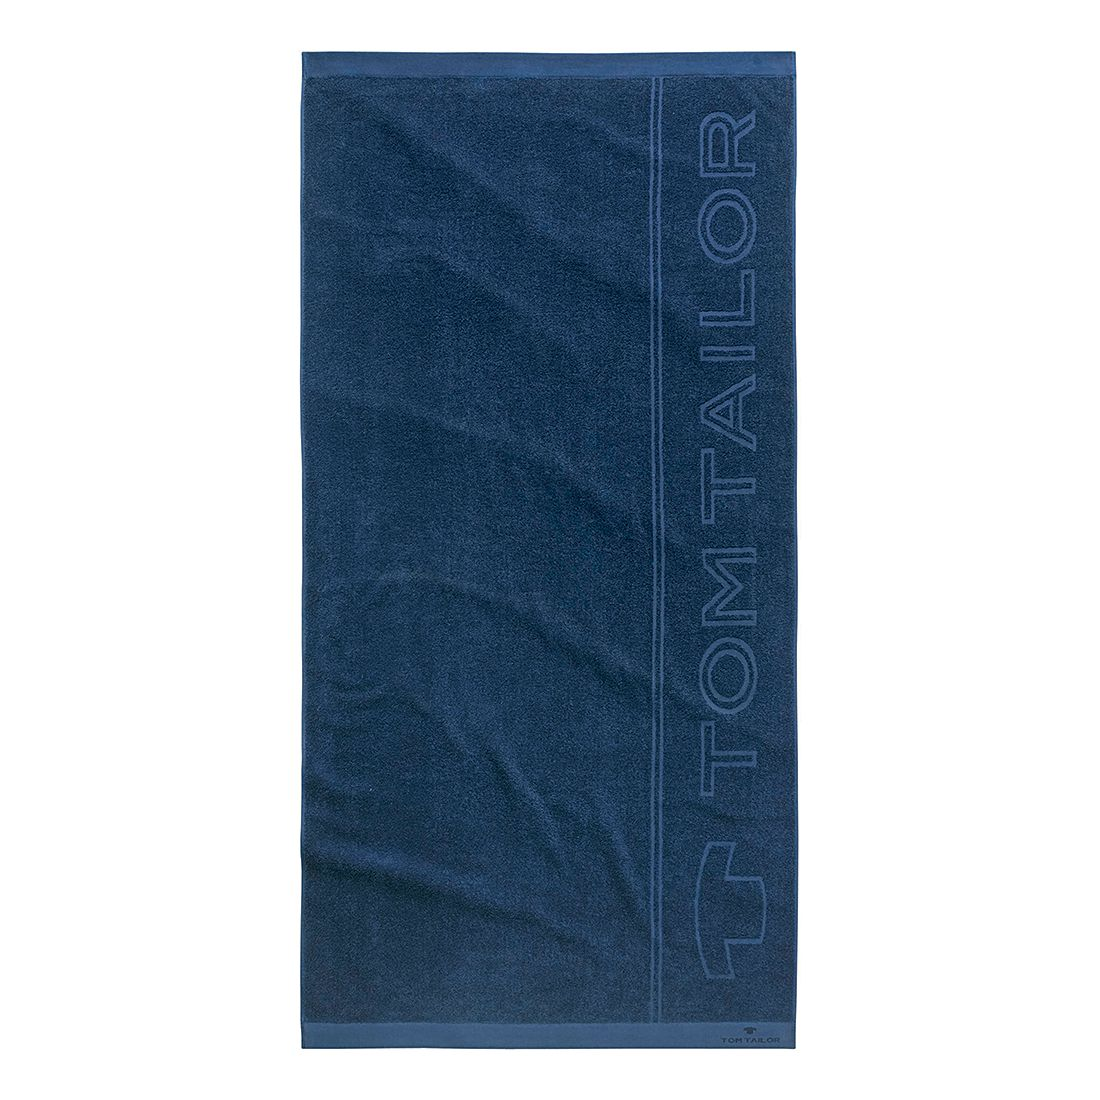 Home 24 - Serviette beach towels - bleu foncé, tom tailor